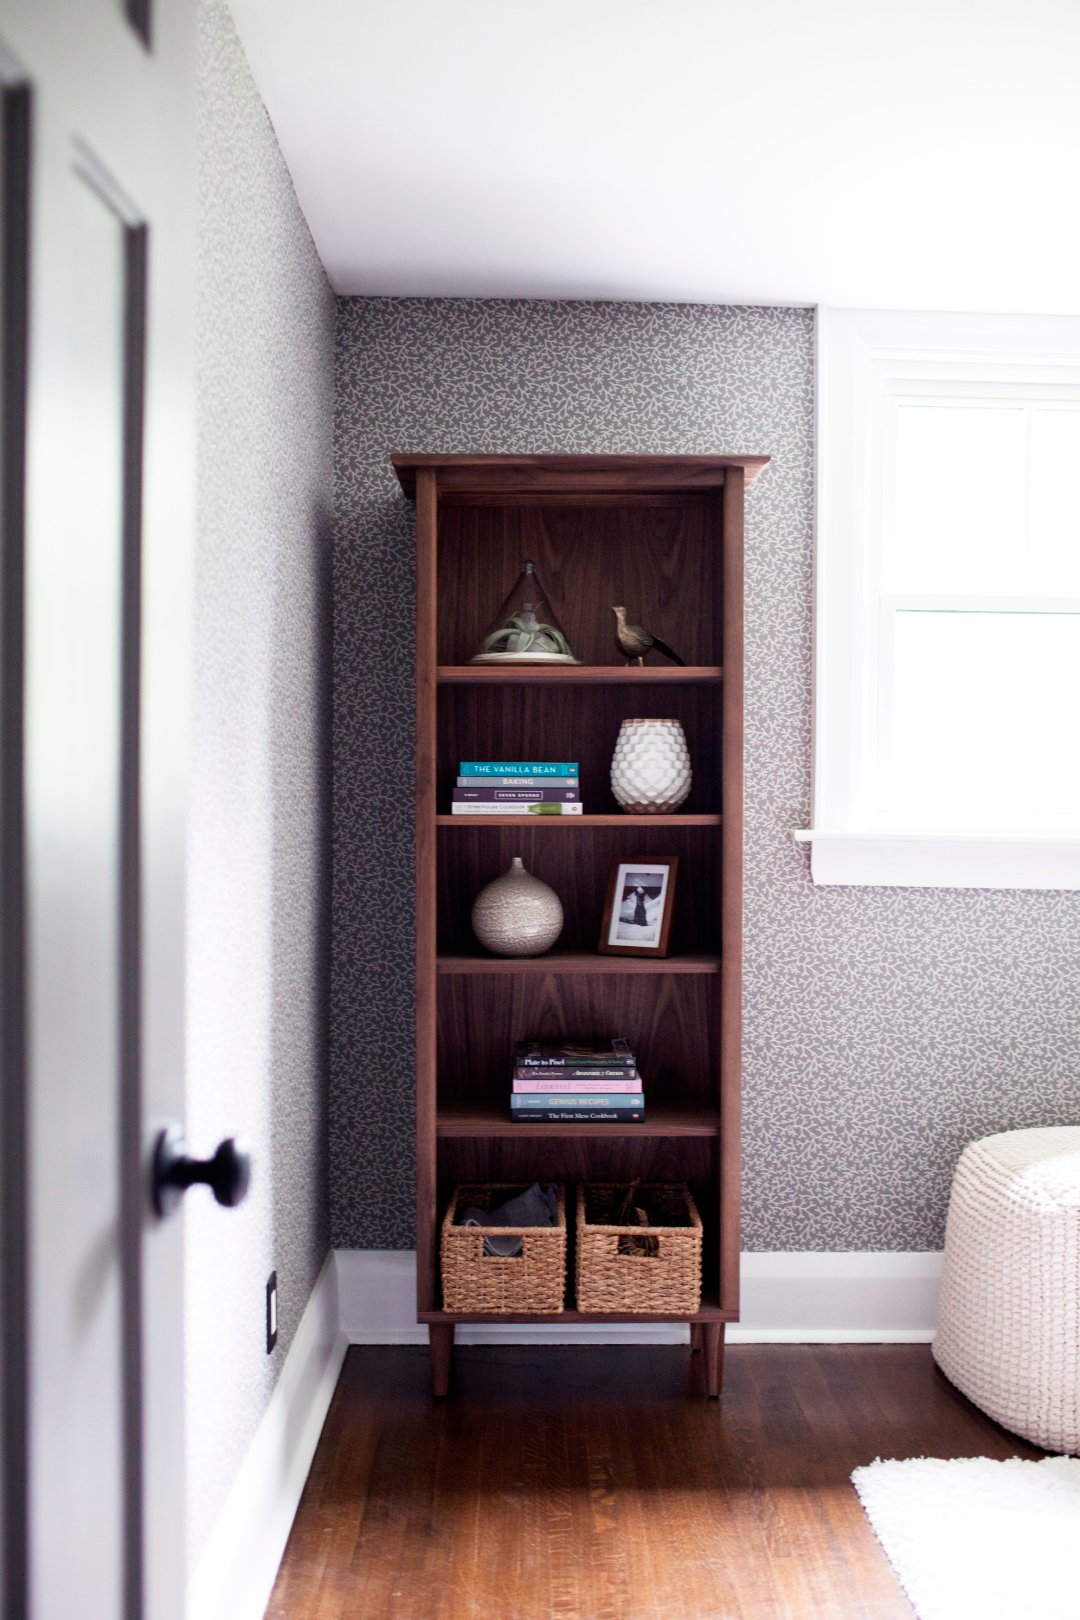 Bookcase filled with vases, books, and storage baskets